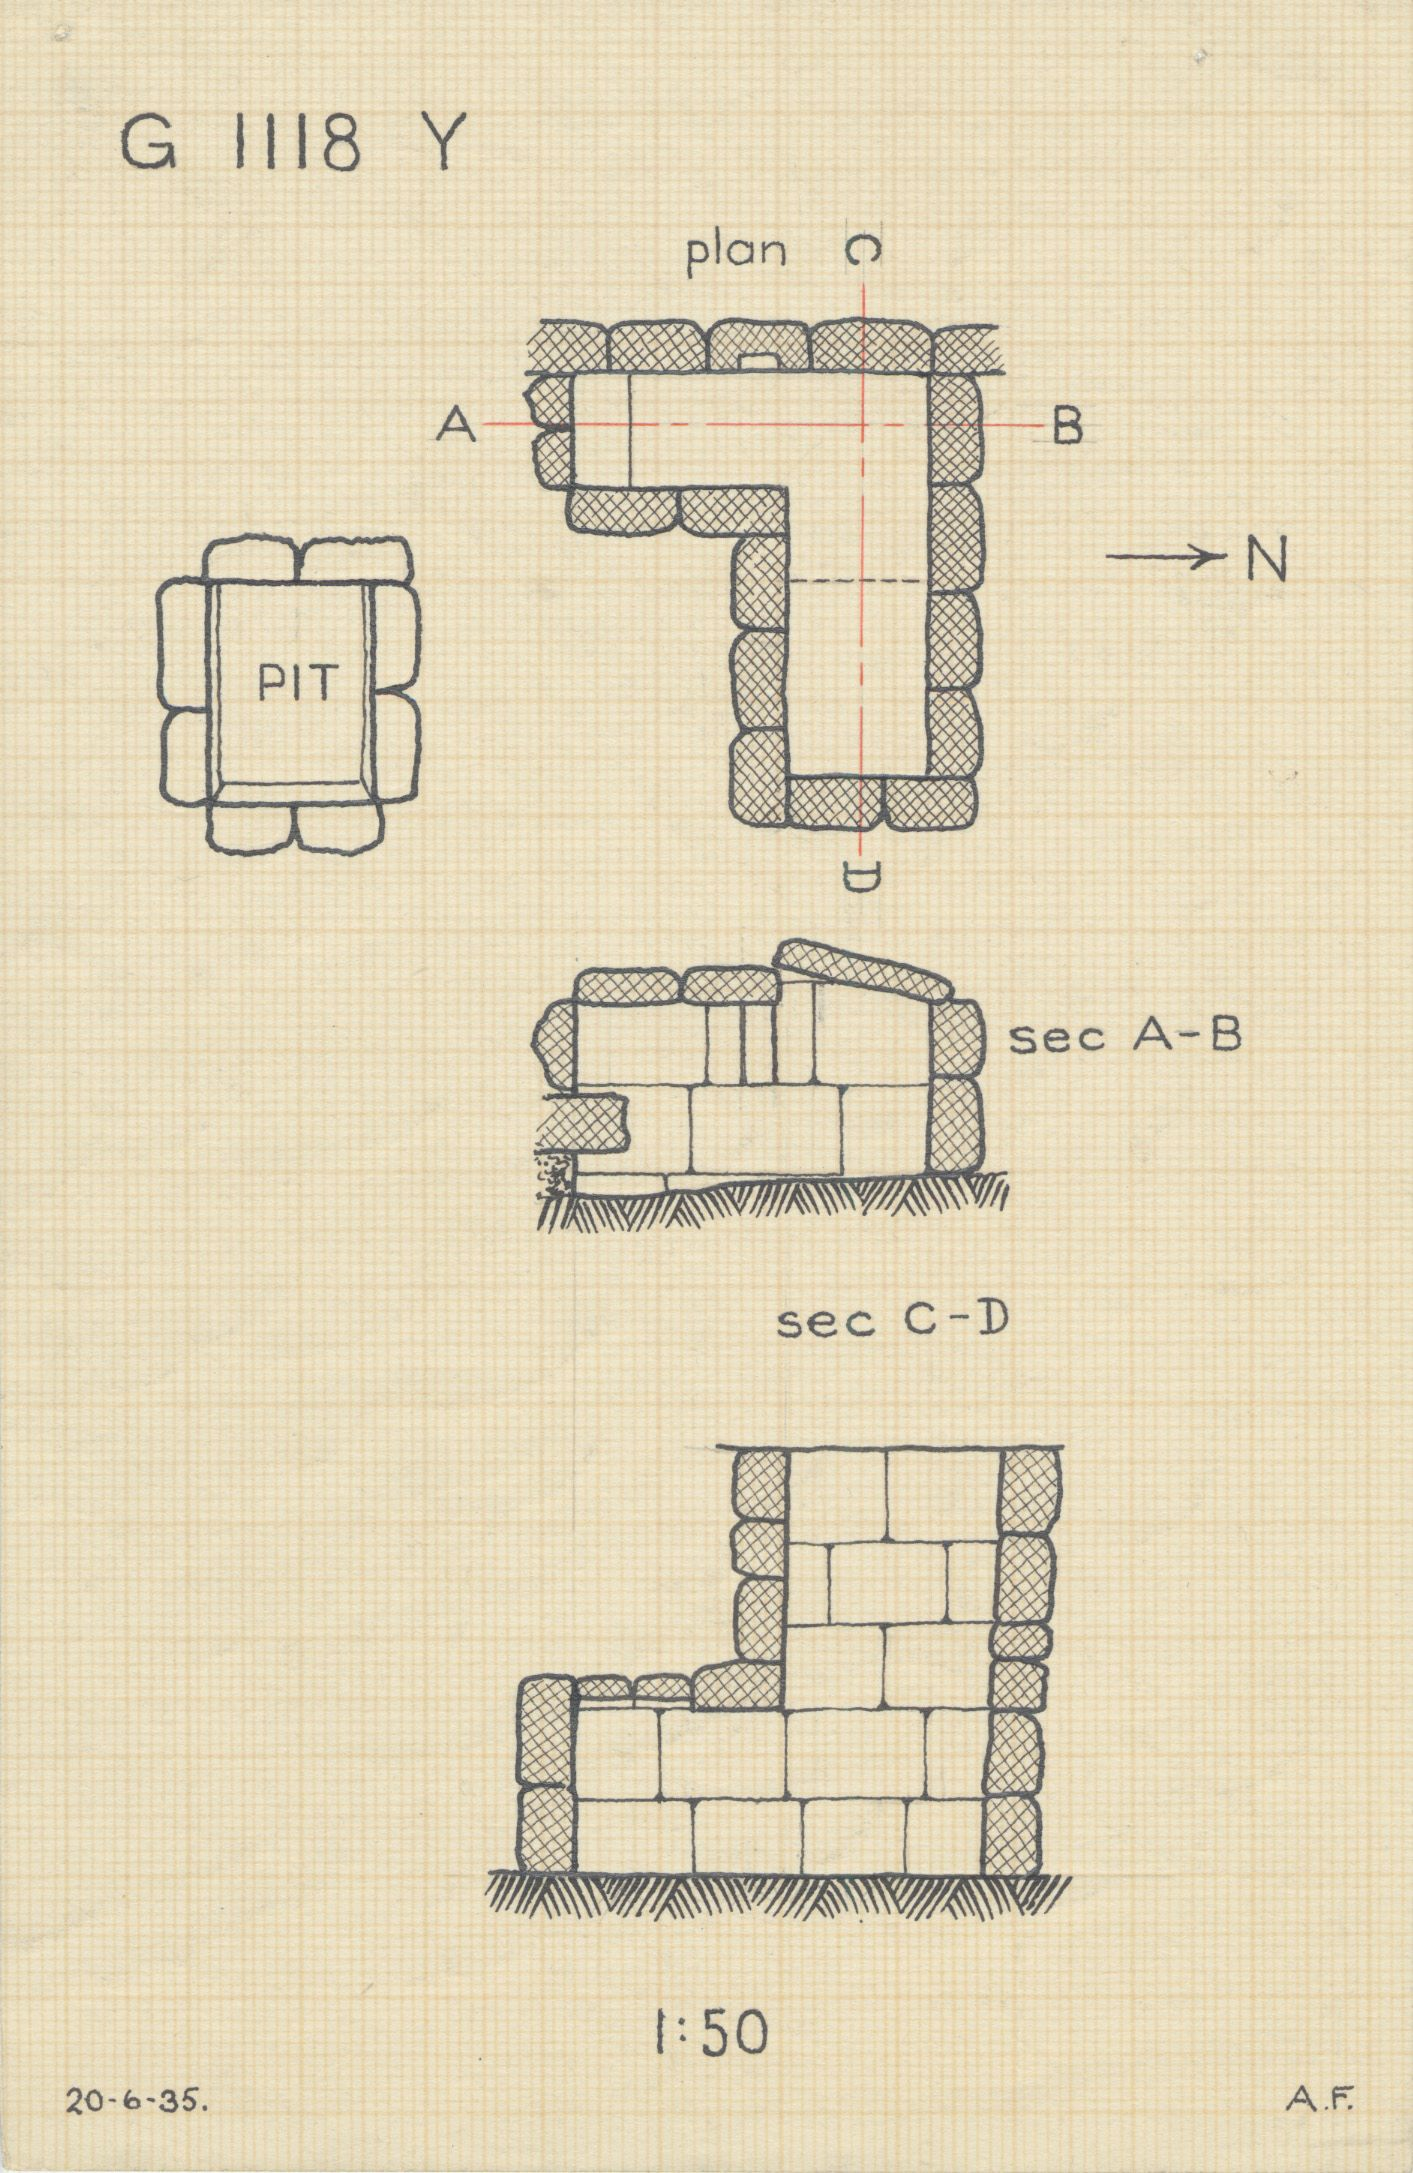 Maps and plans: G 1118, Shaft Y